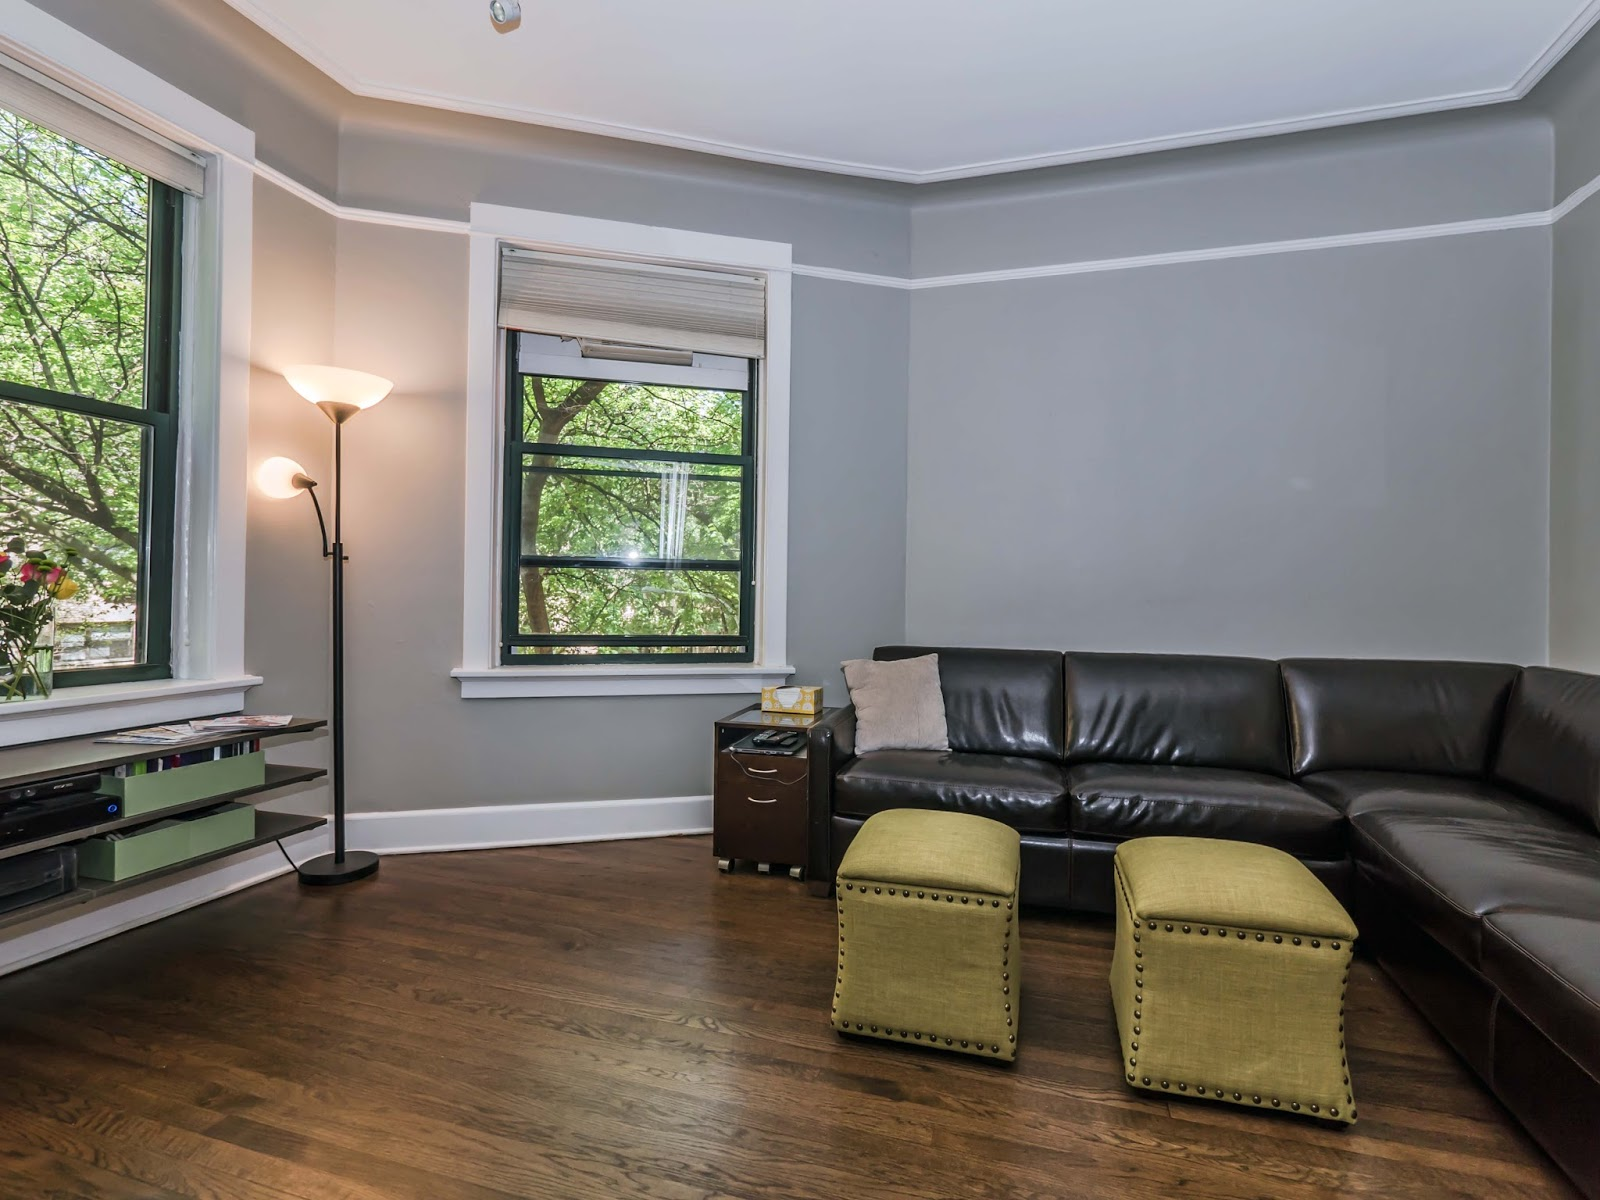 Den Room: The Chicago Real Estate Local: New For Sale! Gorgeous East